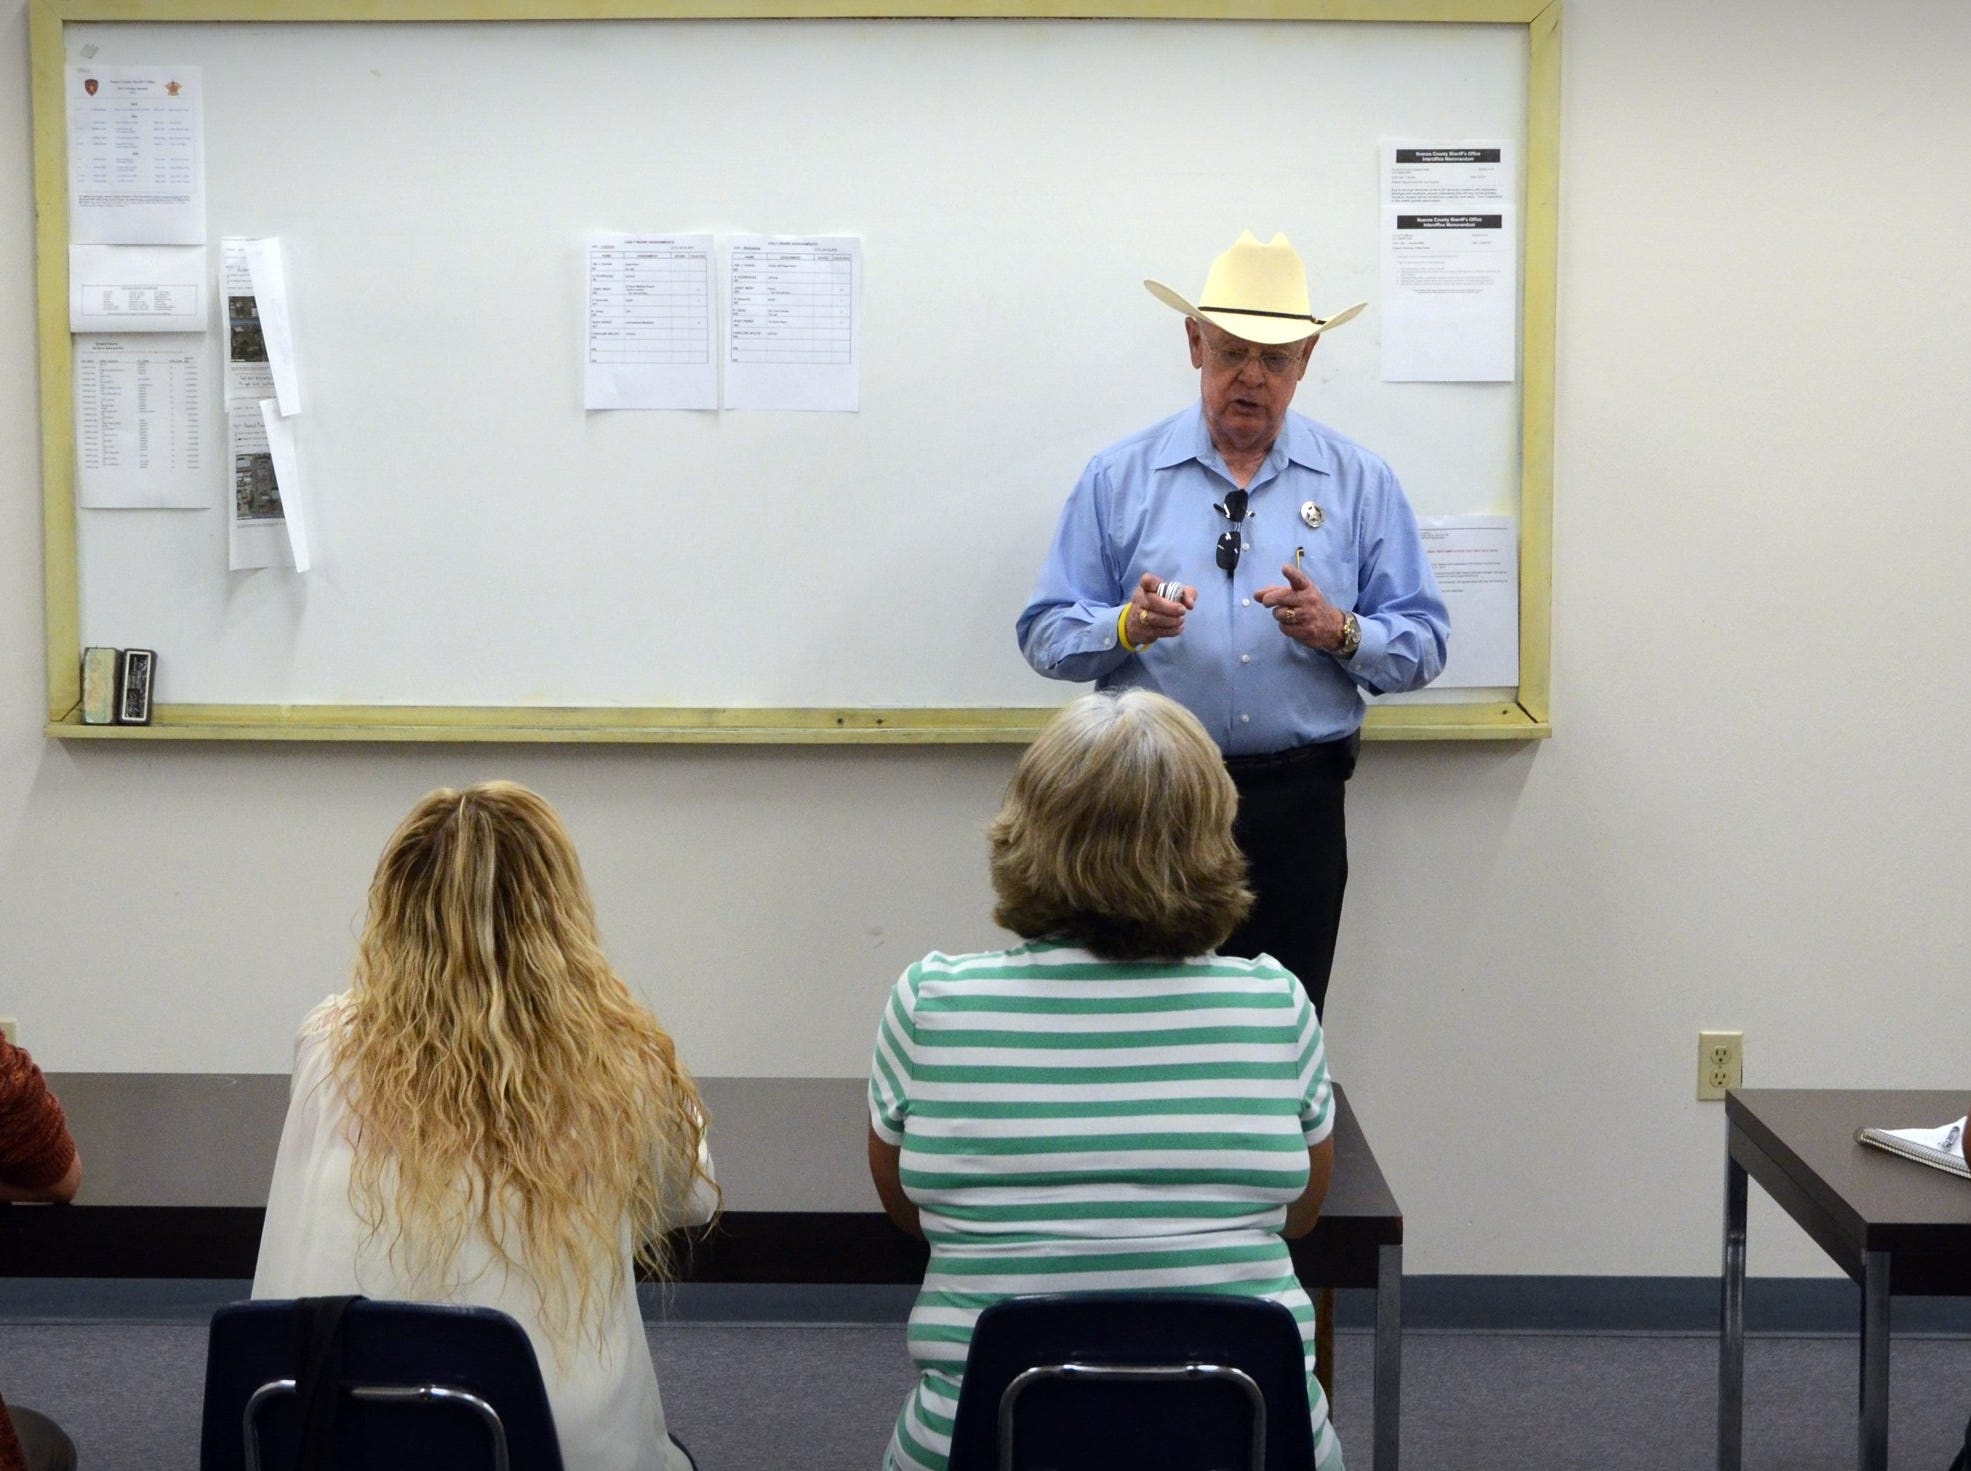 Nueces County Sheriff Jim Kaelin talking with local middle and high school teachers and couselors, learning about the Nueces County Sheriff's Office Alternative Incacerations and Jail Industries Programs, during a visit to the Nueces County's McKenzie Jail Annex.